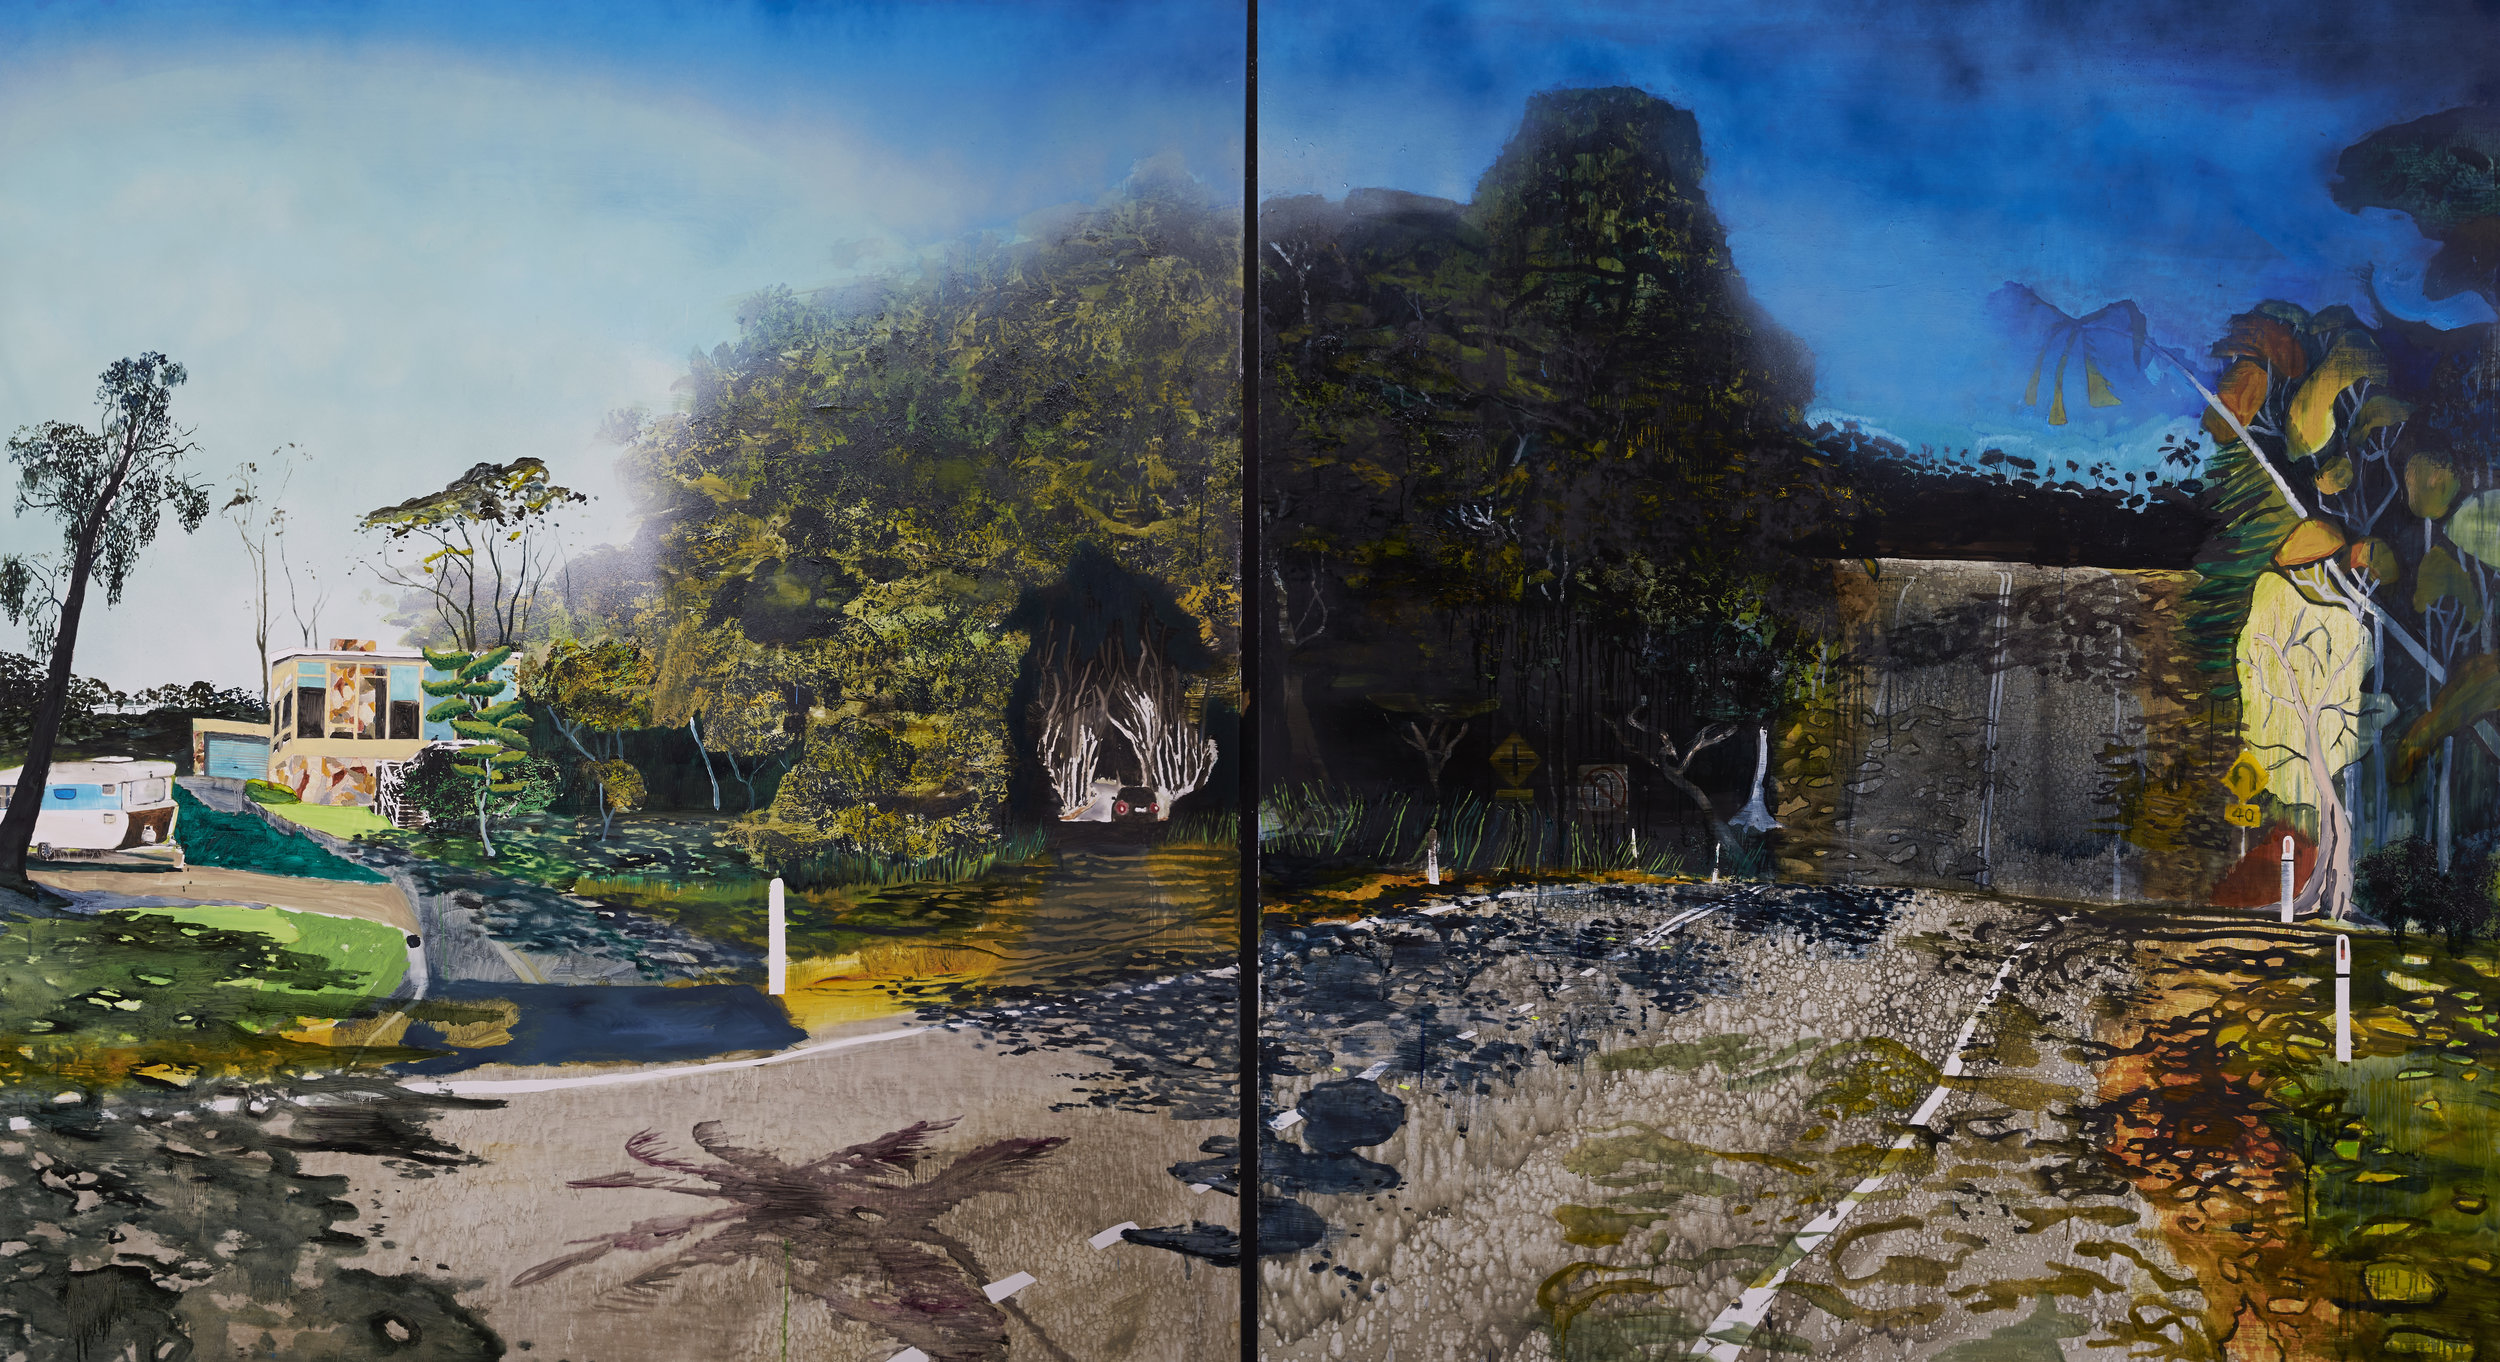 I could tell you about the river or we could just get in  Acrylic, oil and enamel on linen. 180x 400 cm 2015